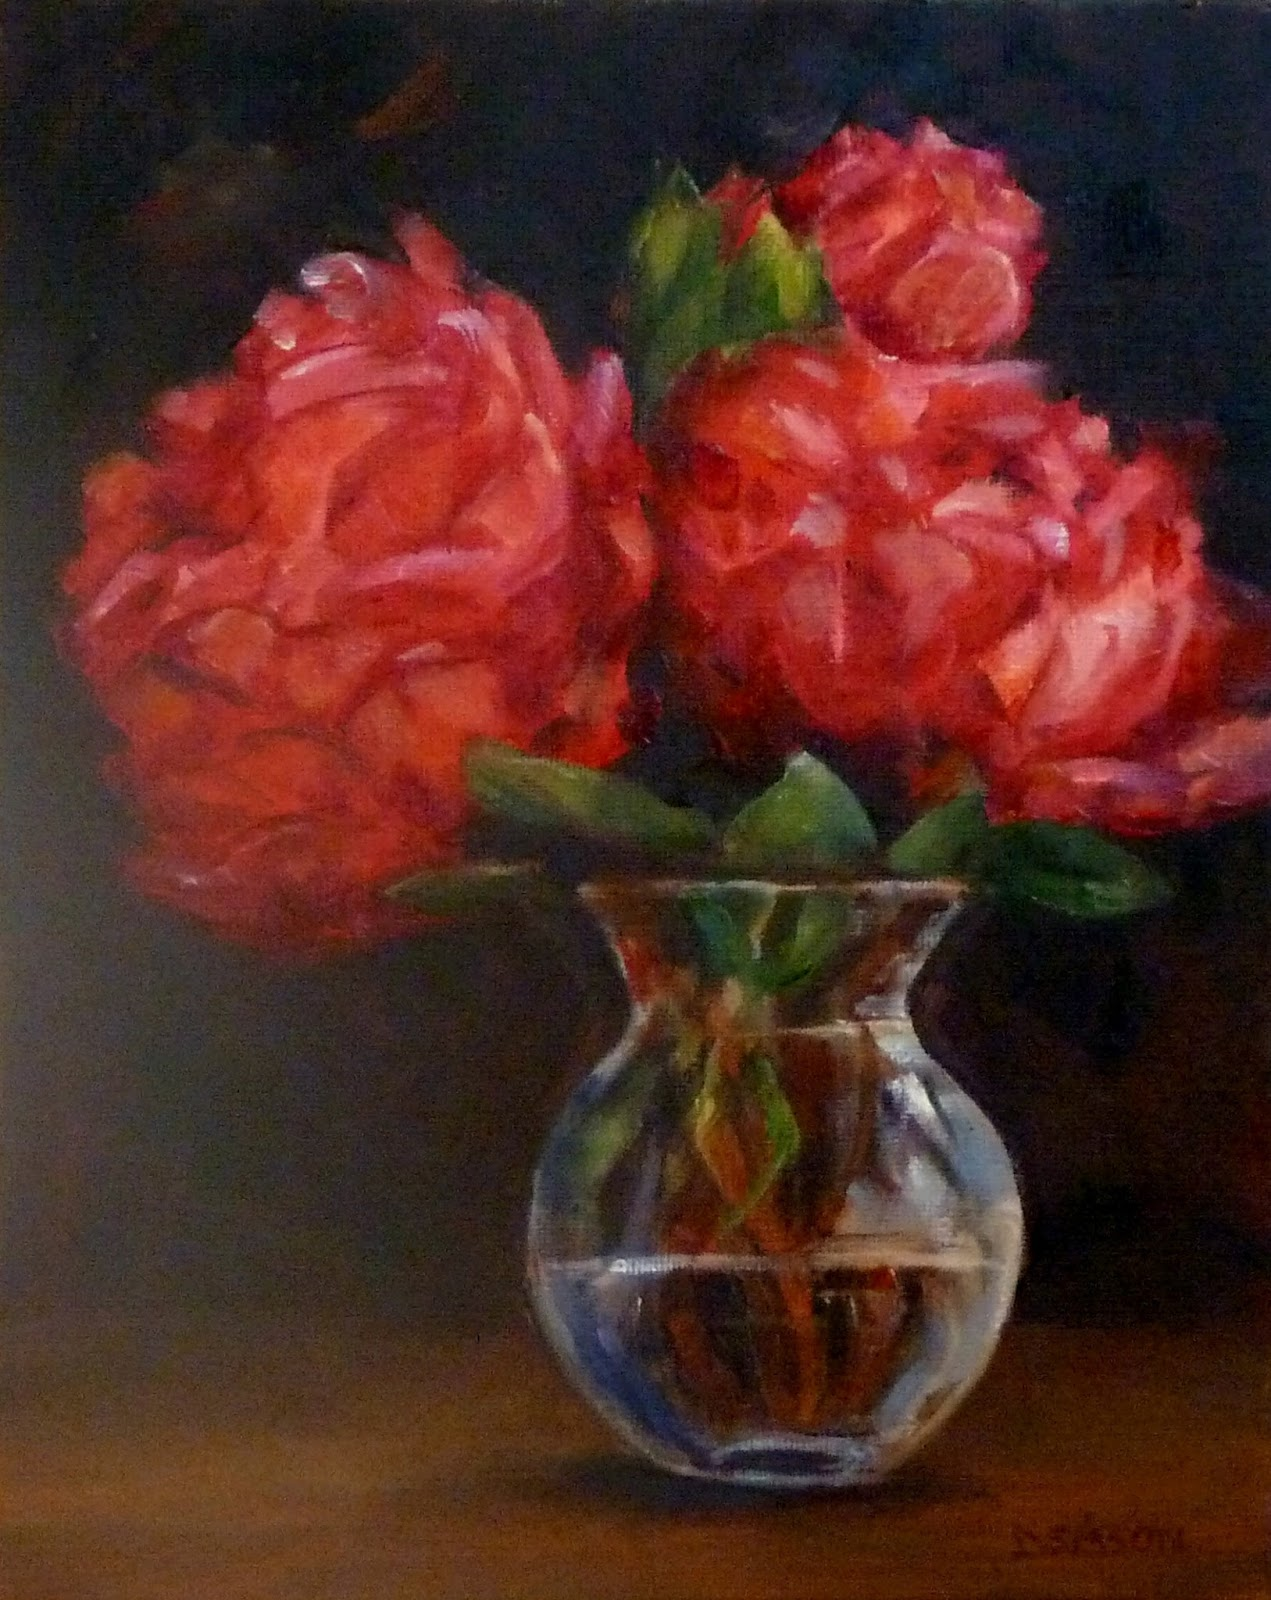 Daily painting projects peonies in bud vase still life painting peonies in bud vase reviewsmspy